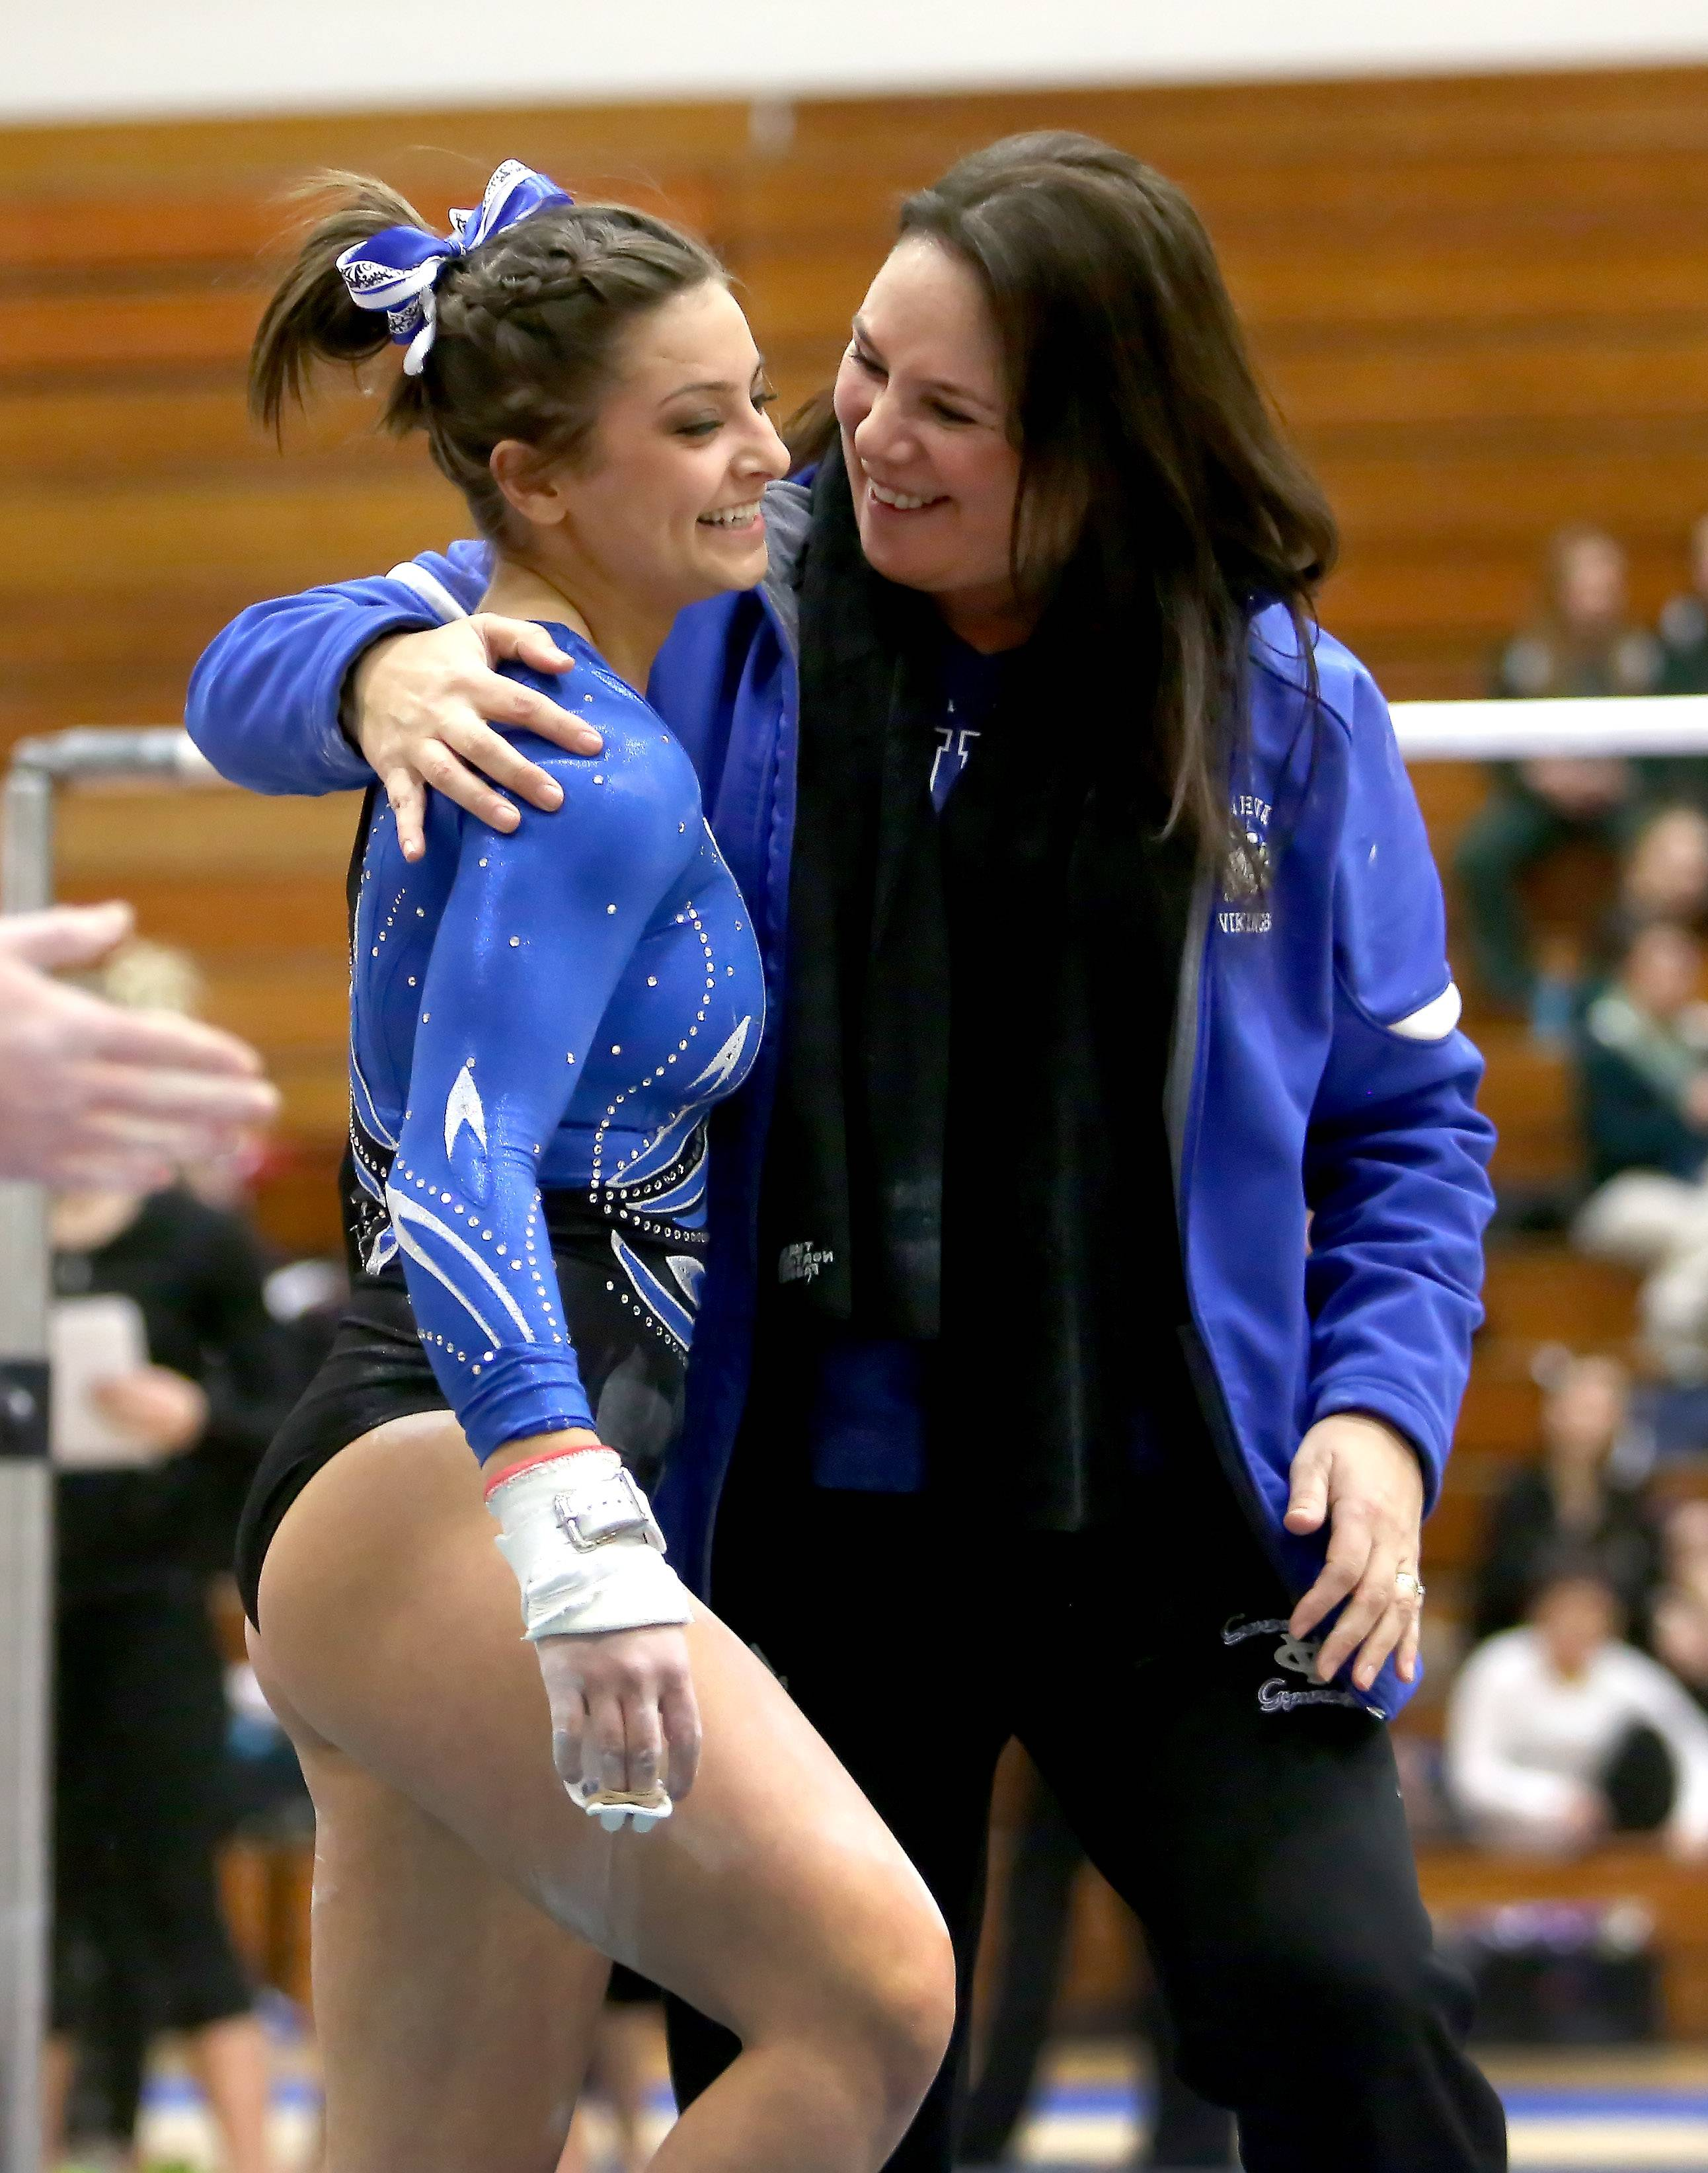 Geneva coach Kim Hostman congratulates Dominique Brognia after her uneven parallel bars routine during gymnastics sectional at Wheaton Warrenville South on Tuesday in Wheaton.